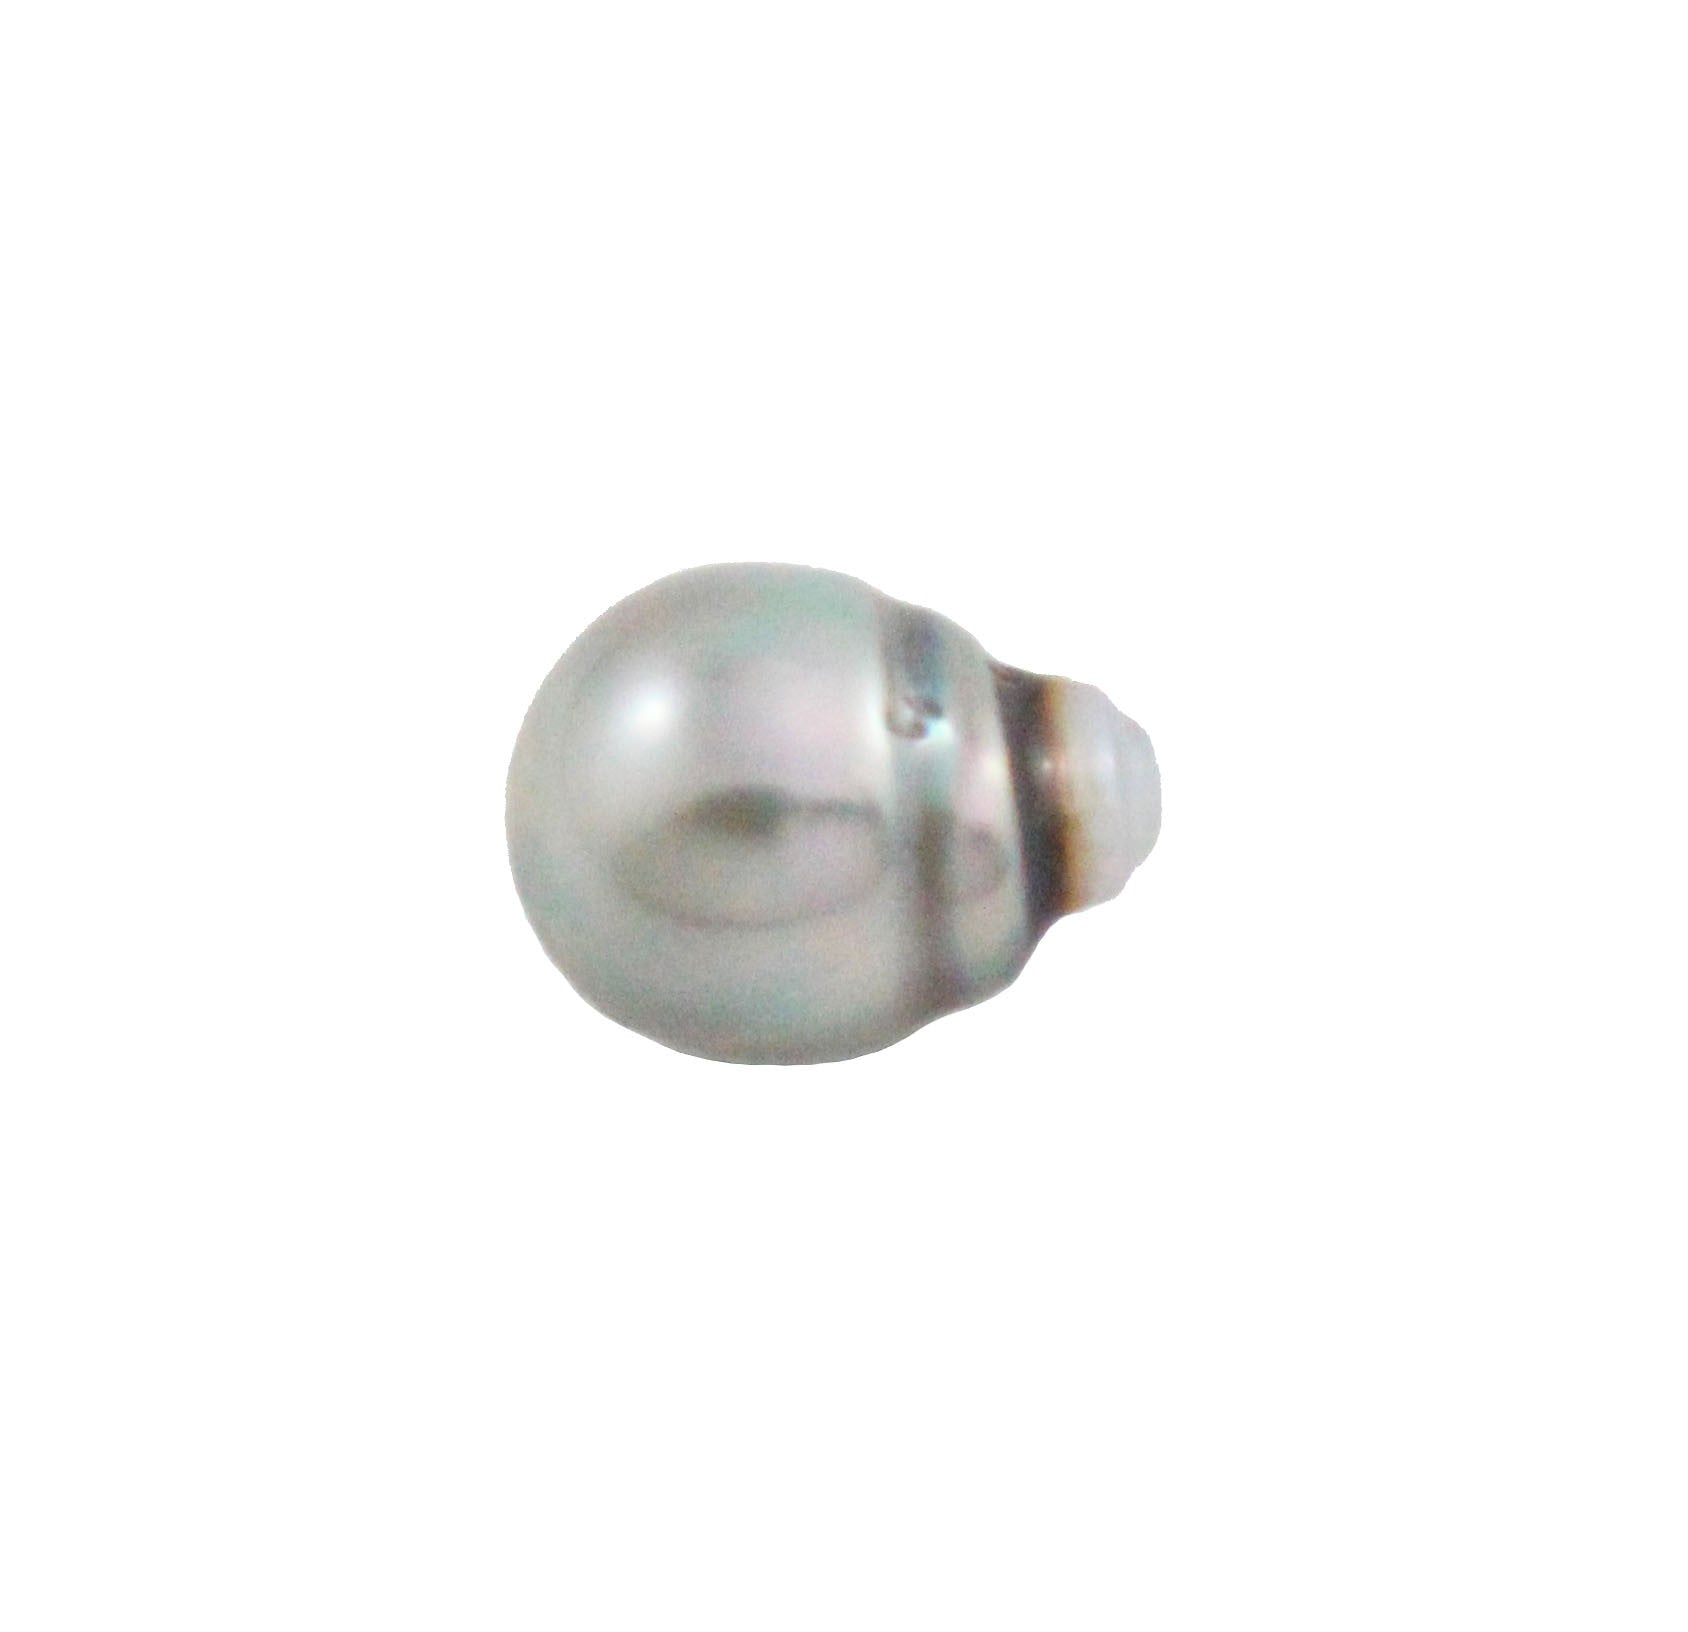 Tahitian pearl undrilled 0.97gr mm 11.15x8.26mm - Purchase only with custom order - Sarah Hughes - 2